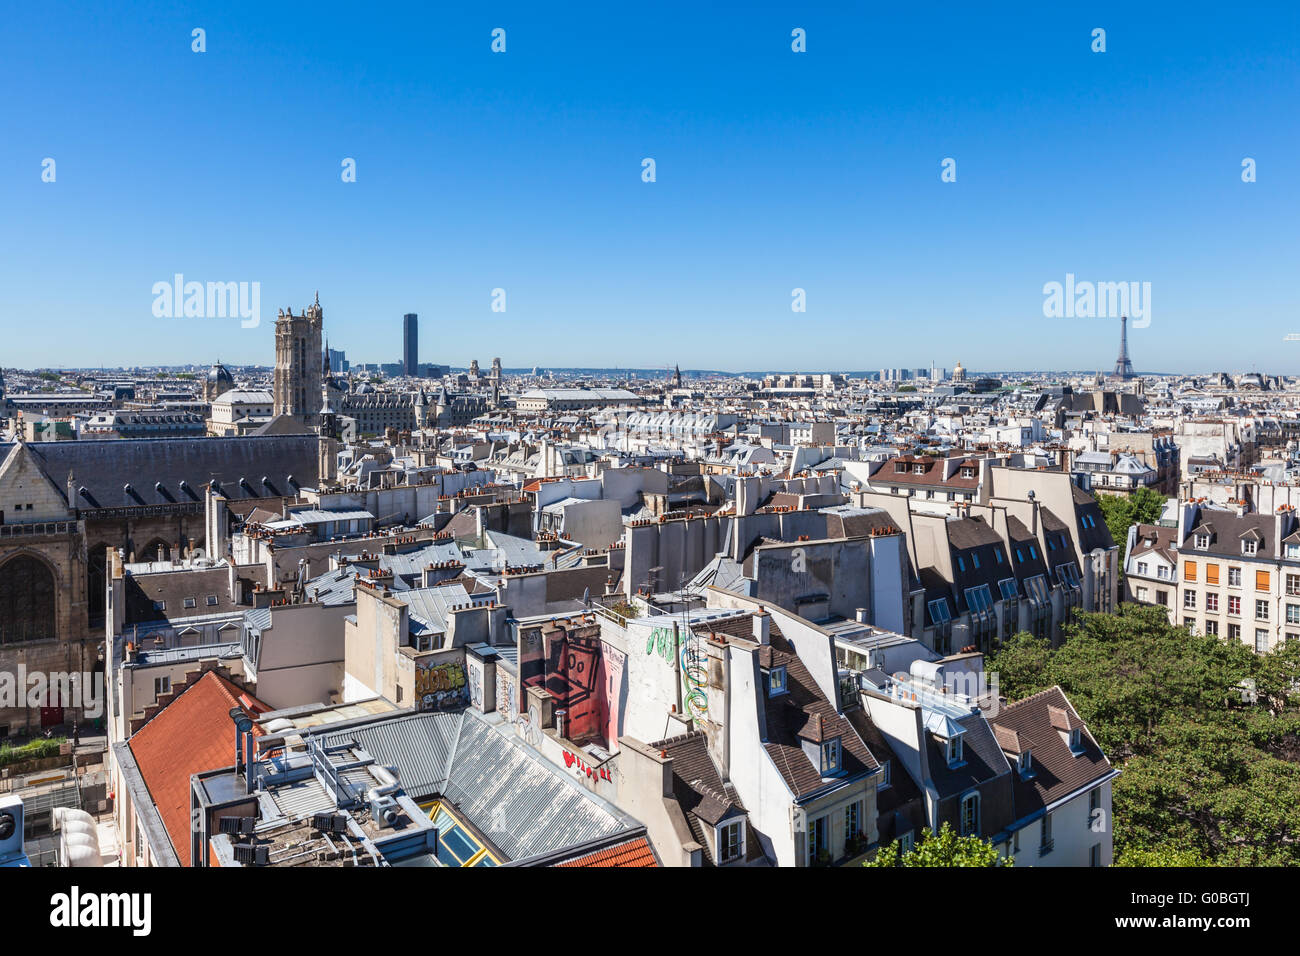 Cityscape of Paris with view of many historical buildings including Eiffel Tower and Notre Dame in Paris, France Stock Photo